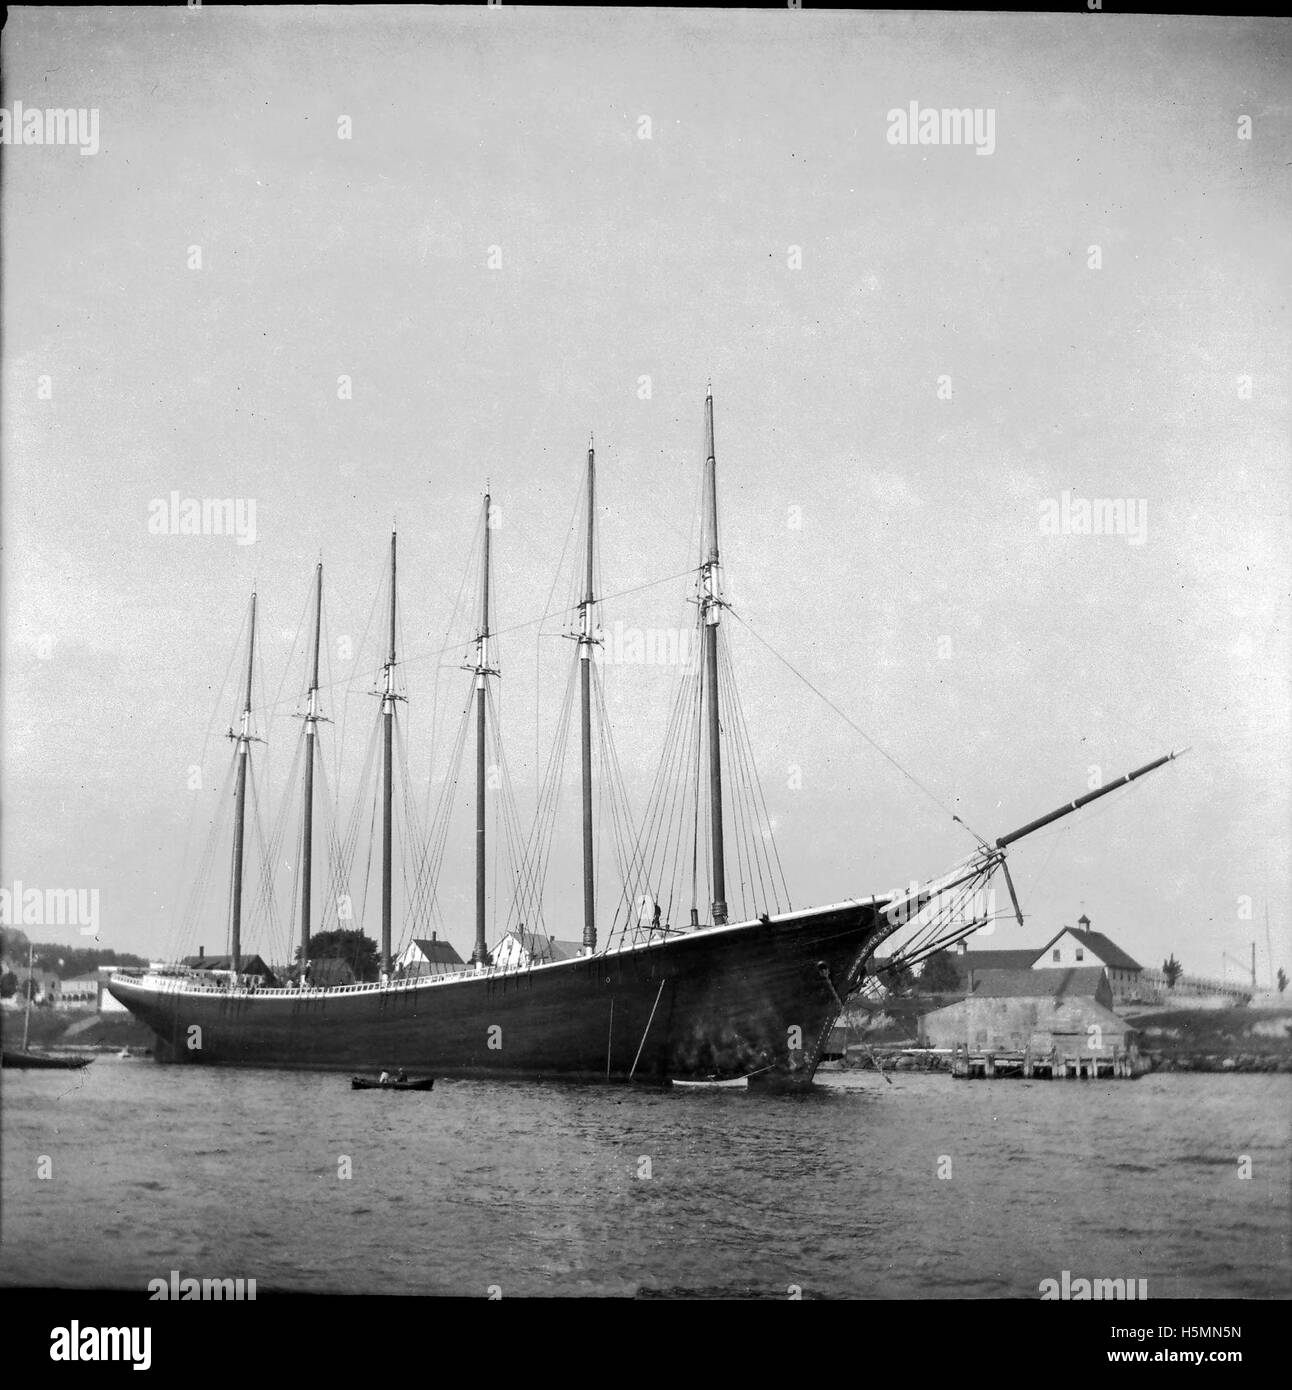 The 6-masted schooner George W. Wells, built in 1900 at the Bean shipyard, was perhaps the most famous vessel to - Stock Image